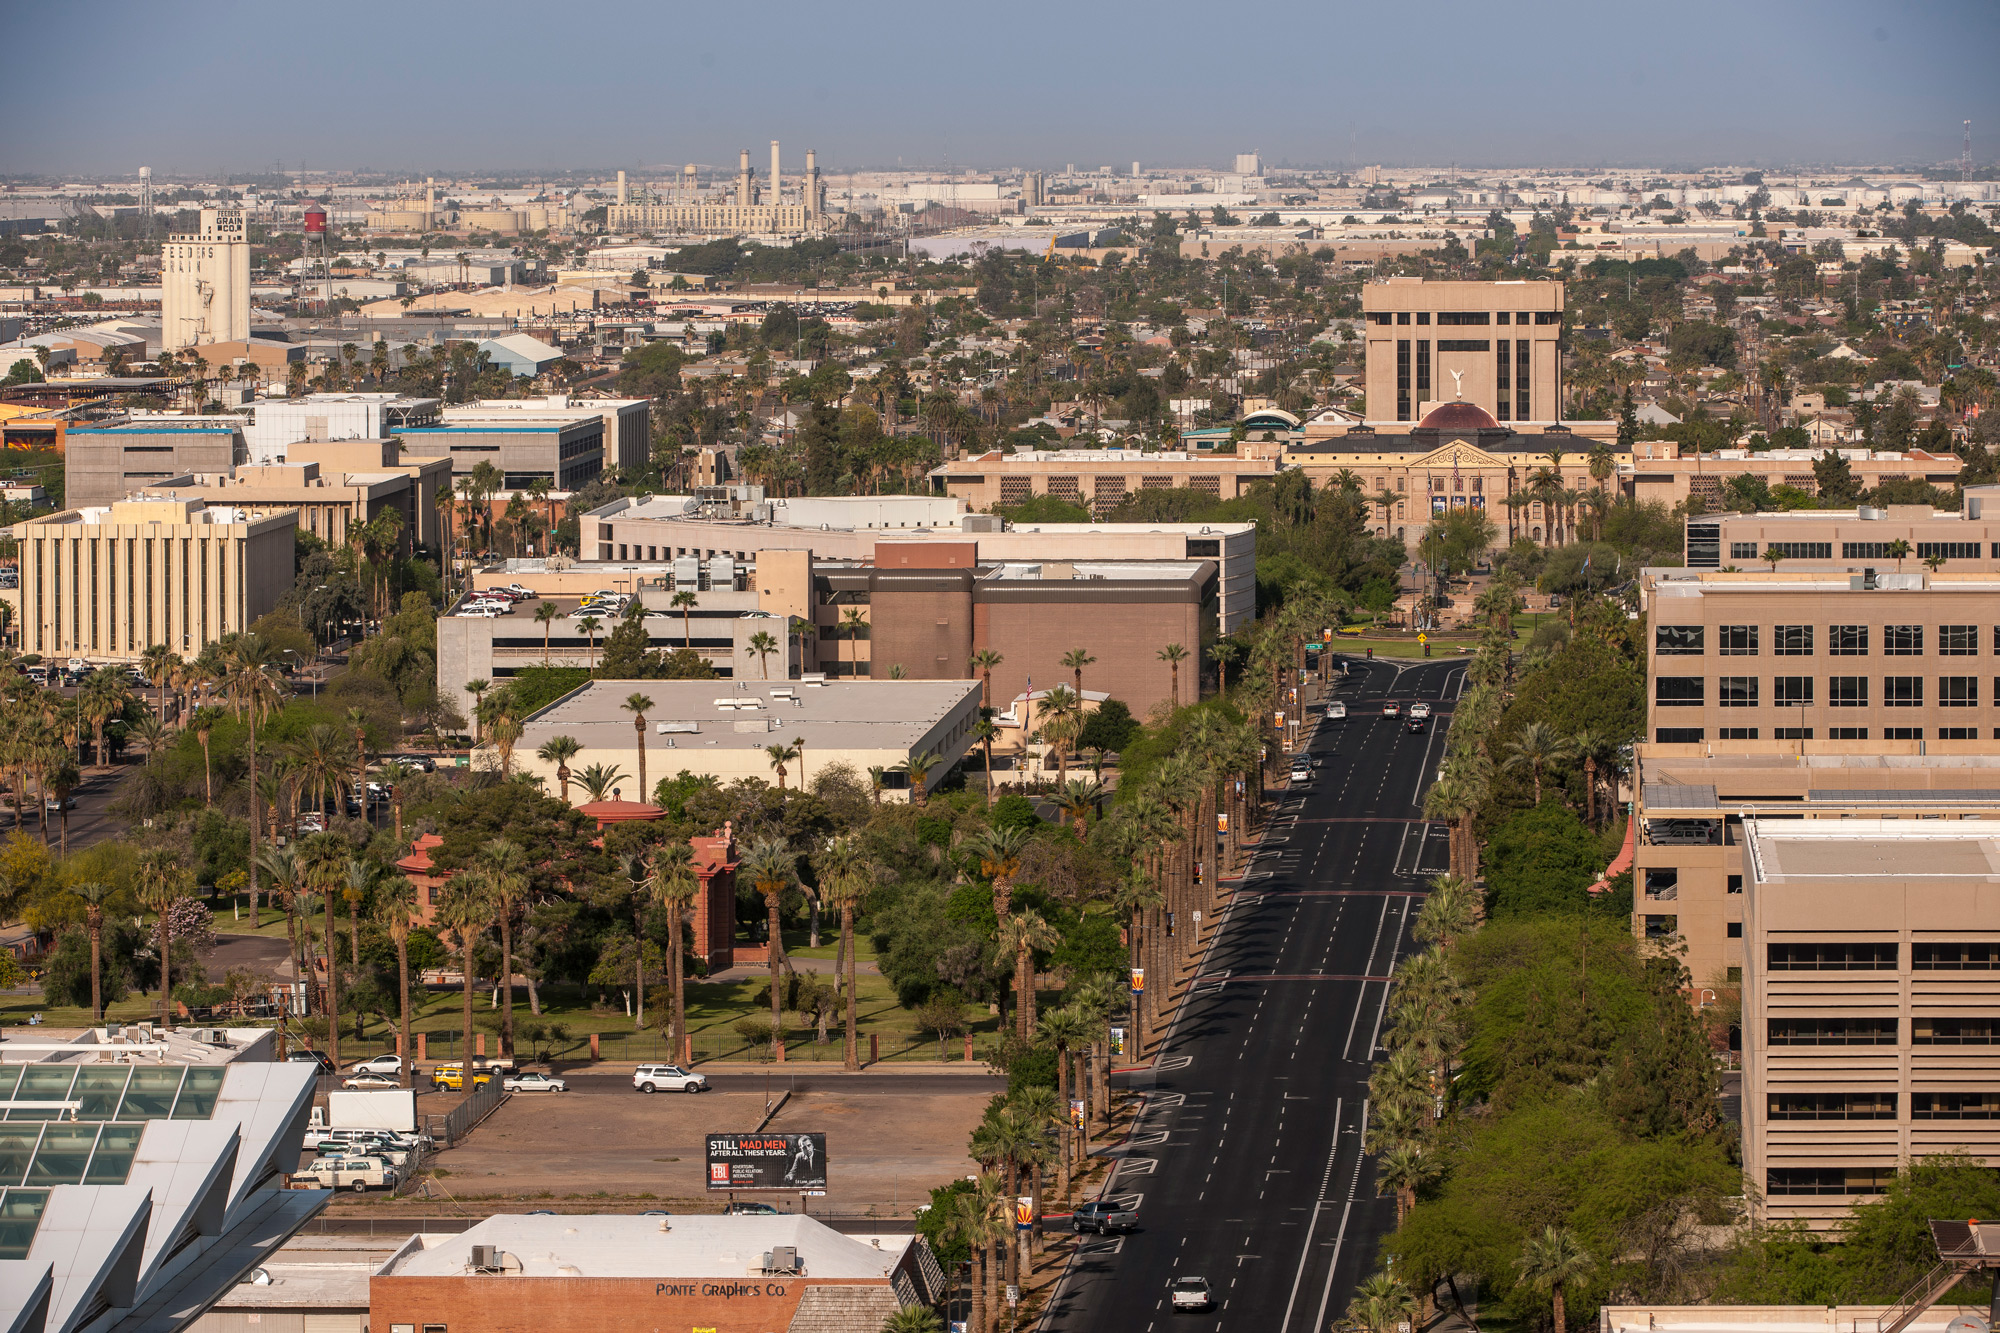 """Arizona's """"Centennial Way"""", honors Arizona's 100 years of statehood by transforming the imperative roadway with wider sidewalks and crosswalks, enhanced street and pedestrian lighting, as well as benches, canopies, and displays that feature historical and cultural information about Arizona's counties."""